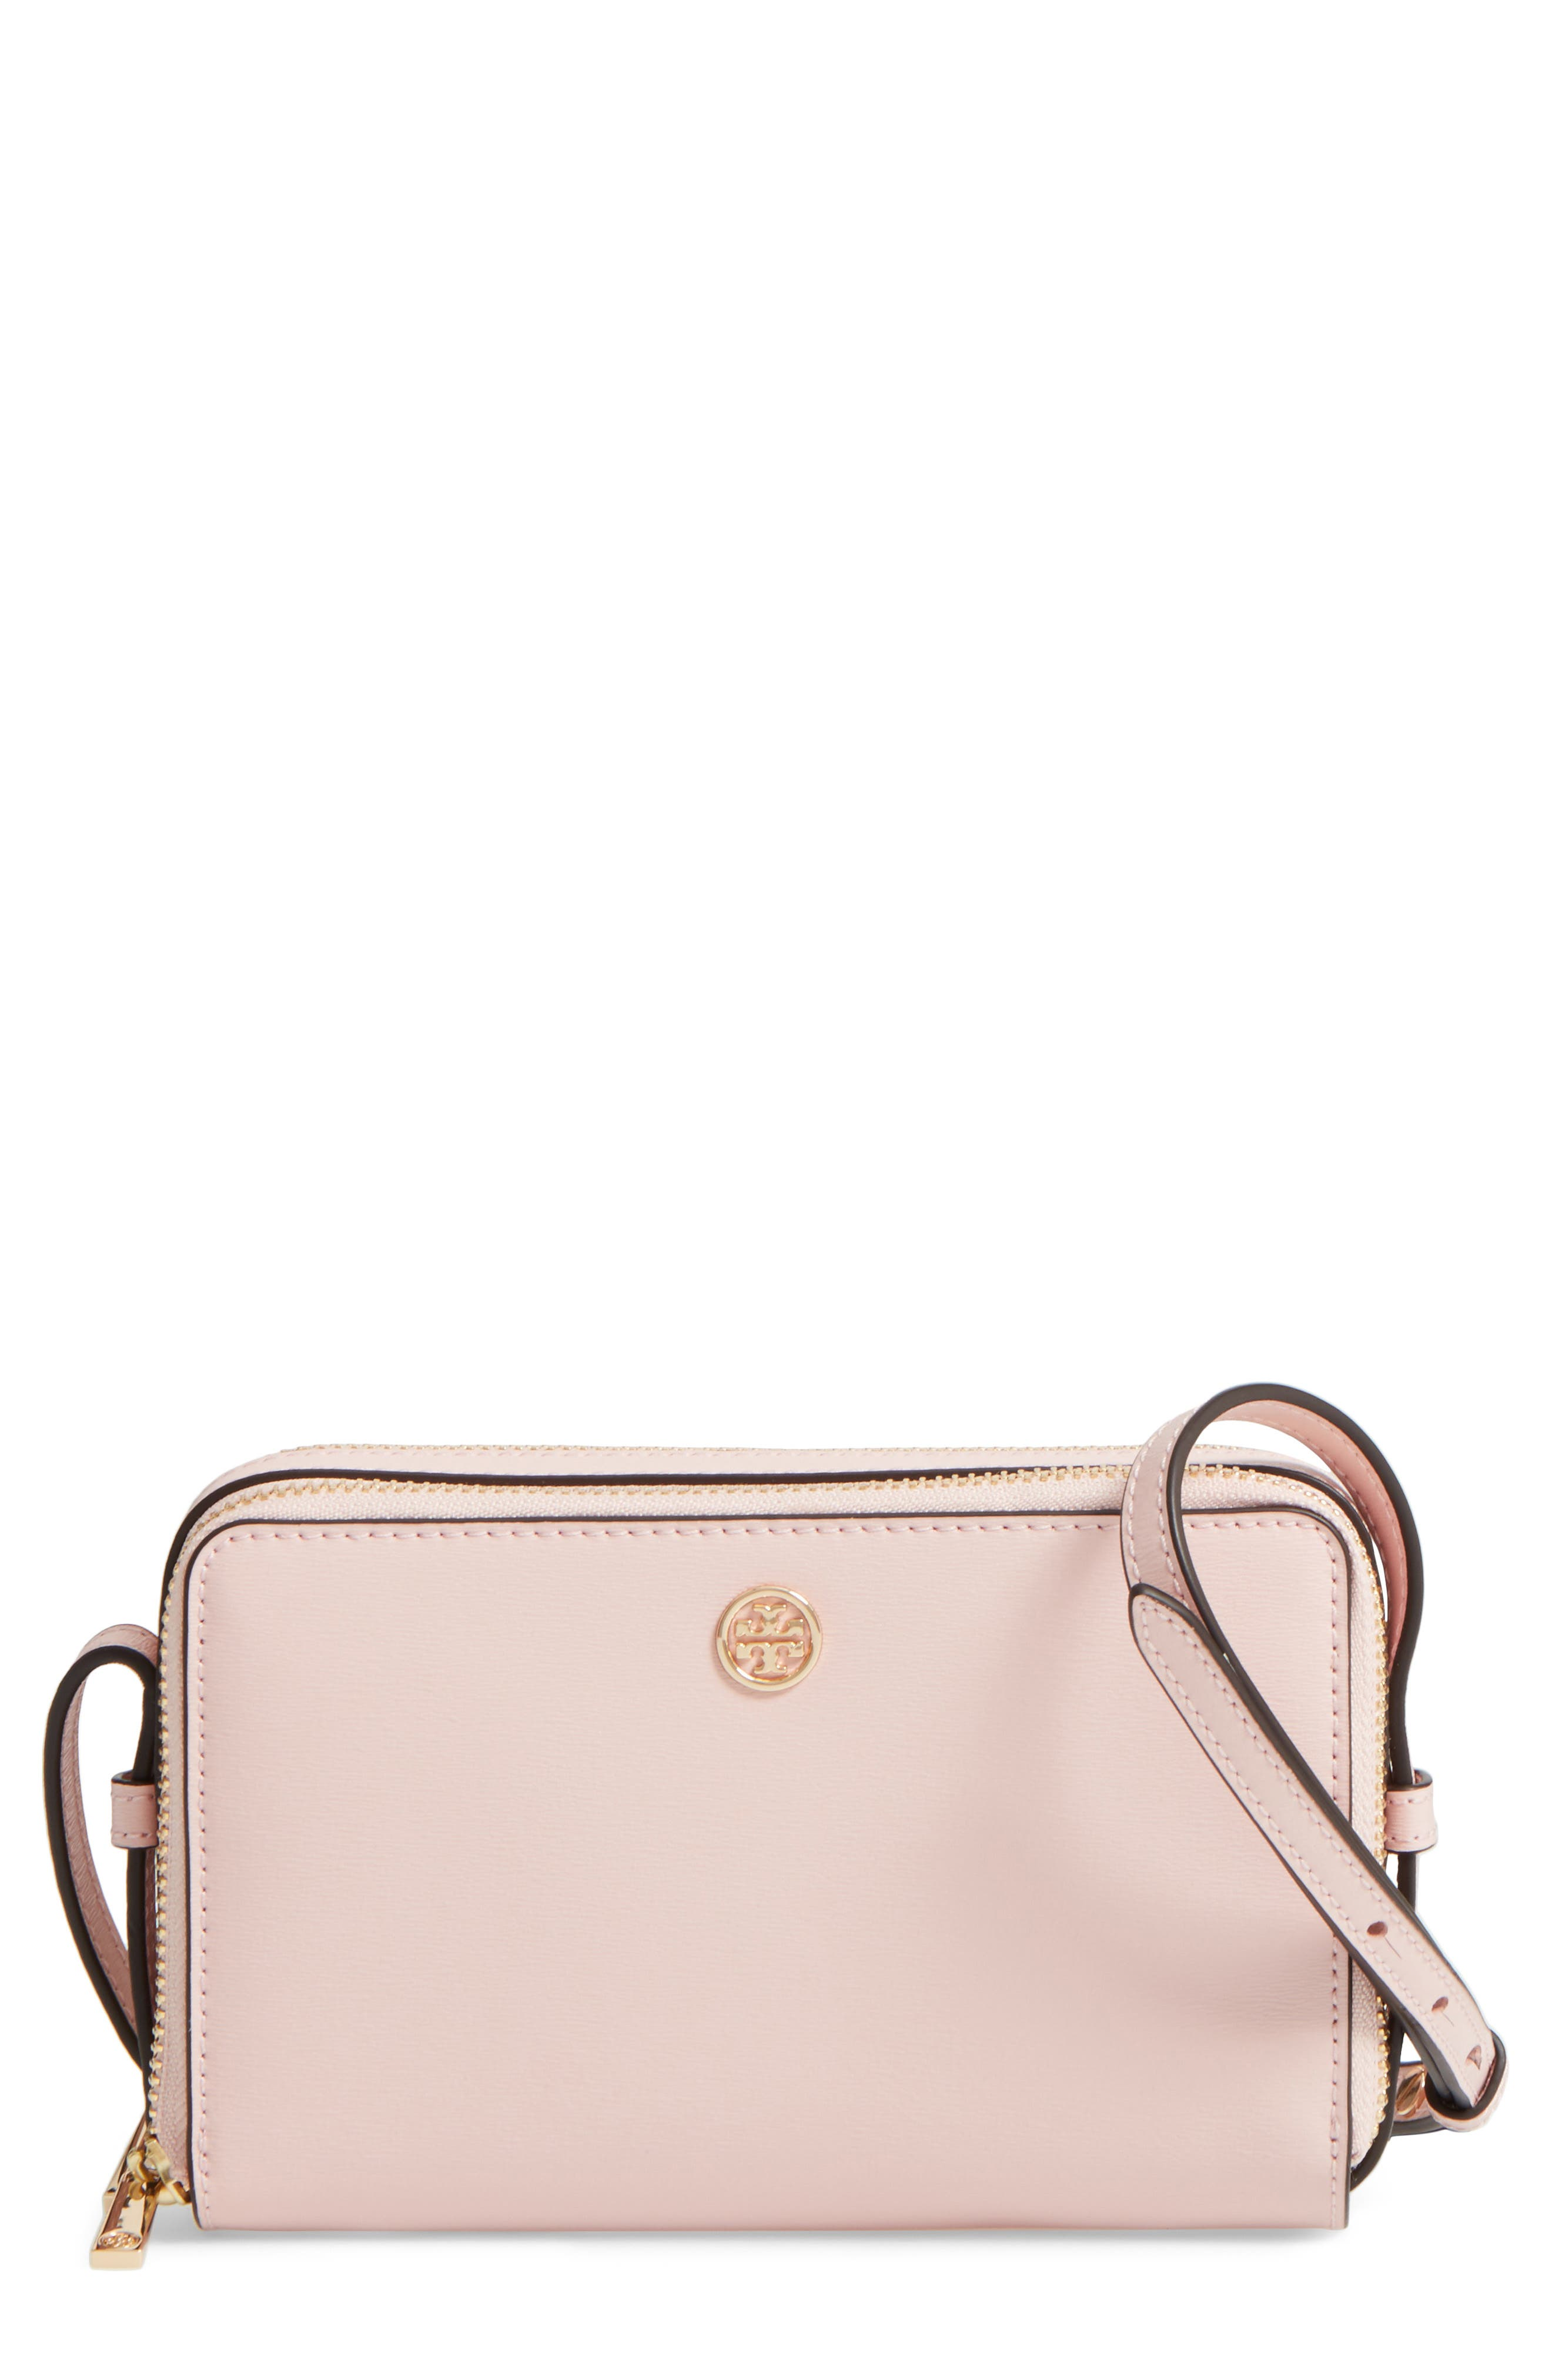 TORY BURCH Mini Parker Leather Crossbody Bag